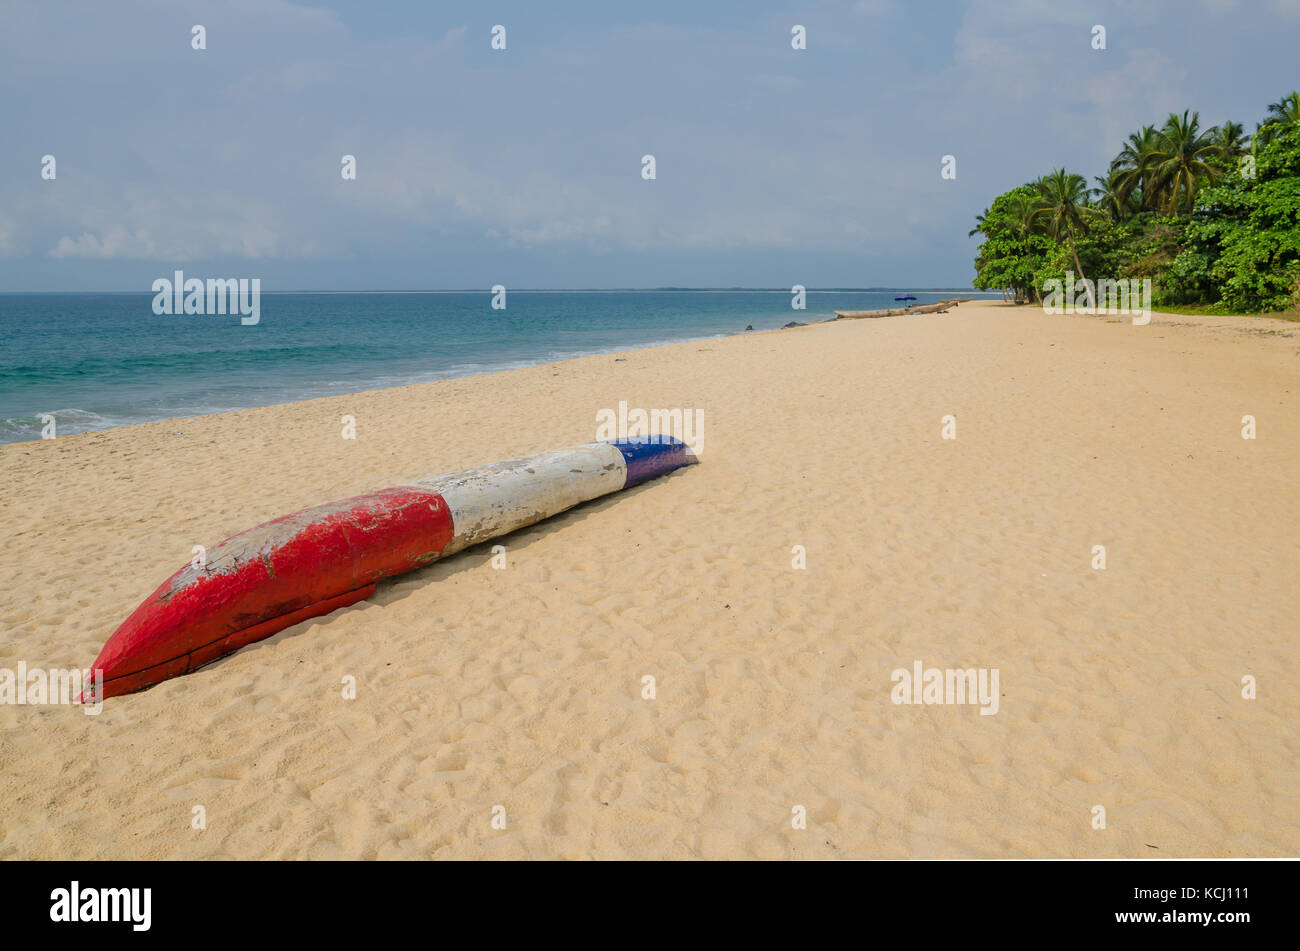 Colorful dugout fishing boat laying on deserted tropical beach at Robertsport, Liberia, West Africa - Stock Image